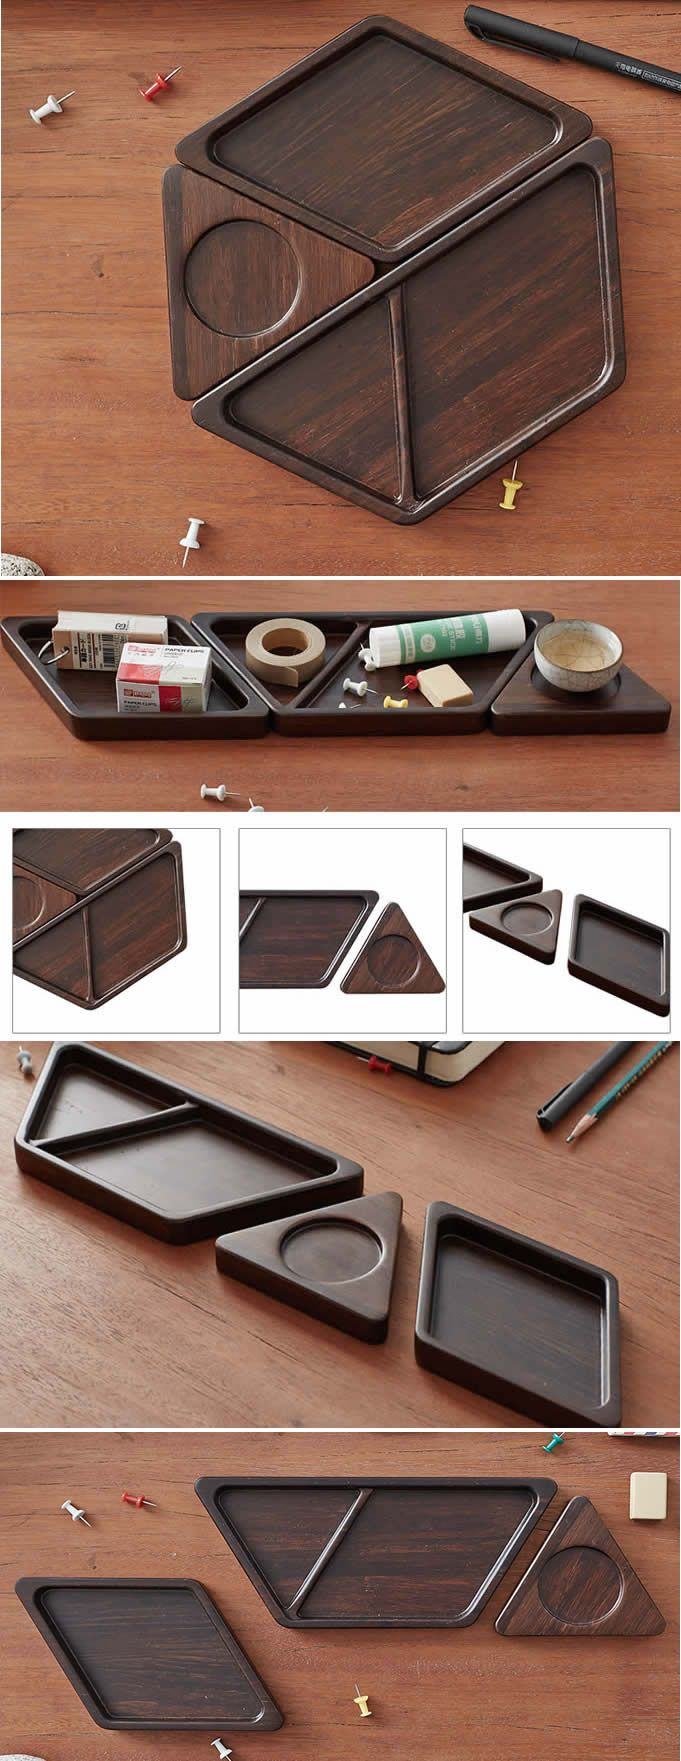 bamboo office desk organizer tray storage holder set cool office supplies pinterest. Black Bedroom Furniture Sets. Home Design Ideas